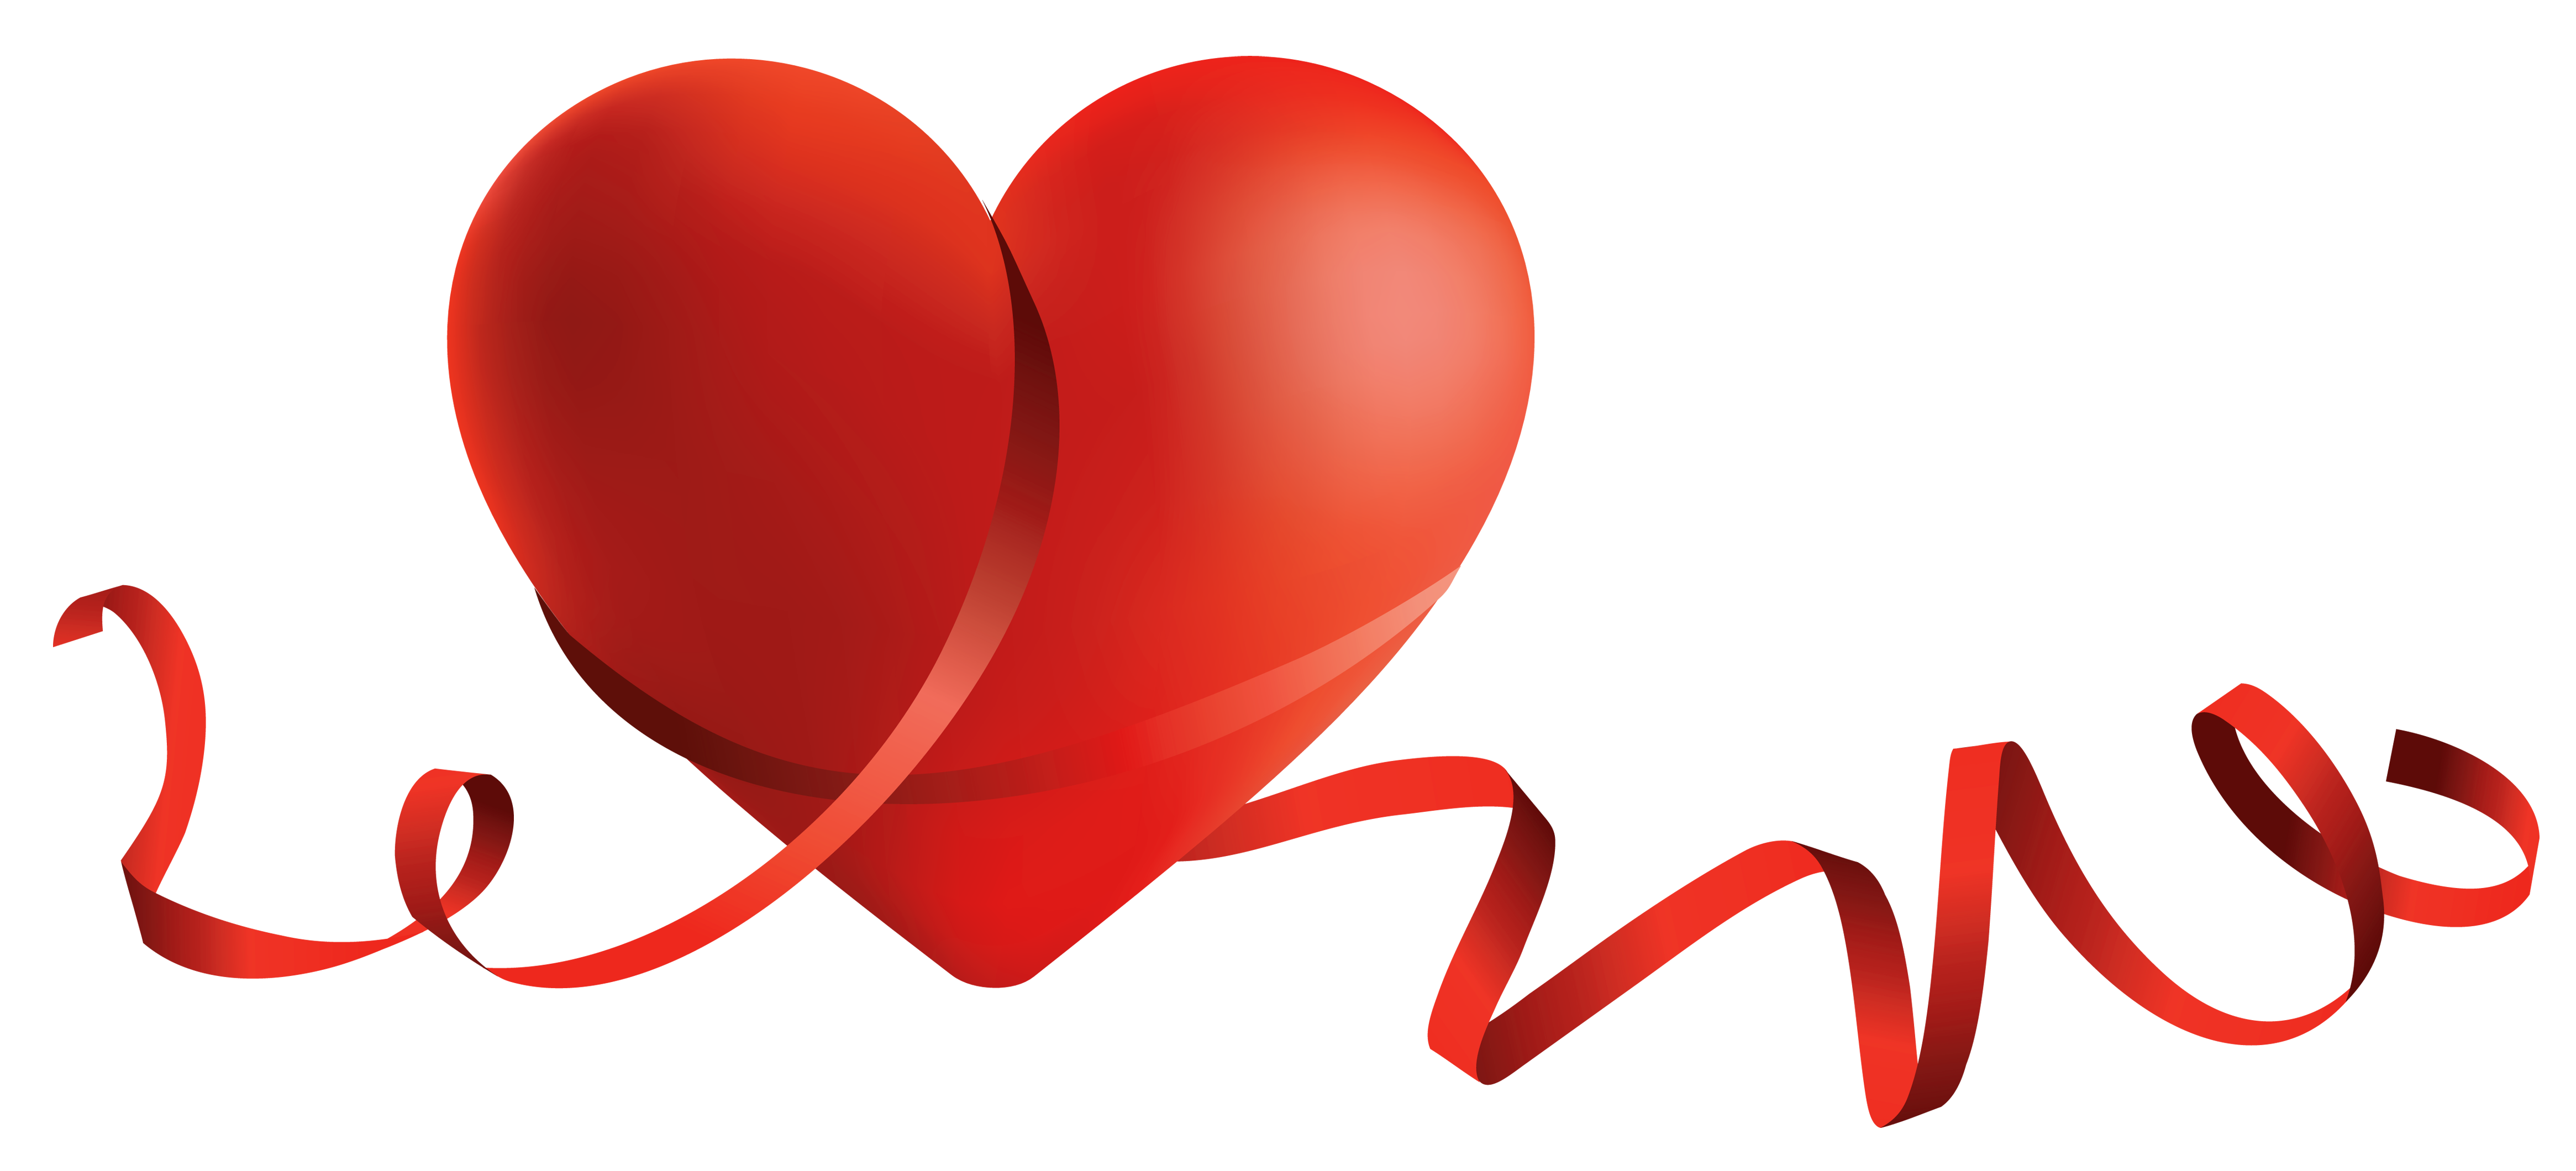 Clipart halloween heart. Transparent red with bow